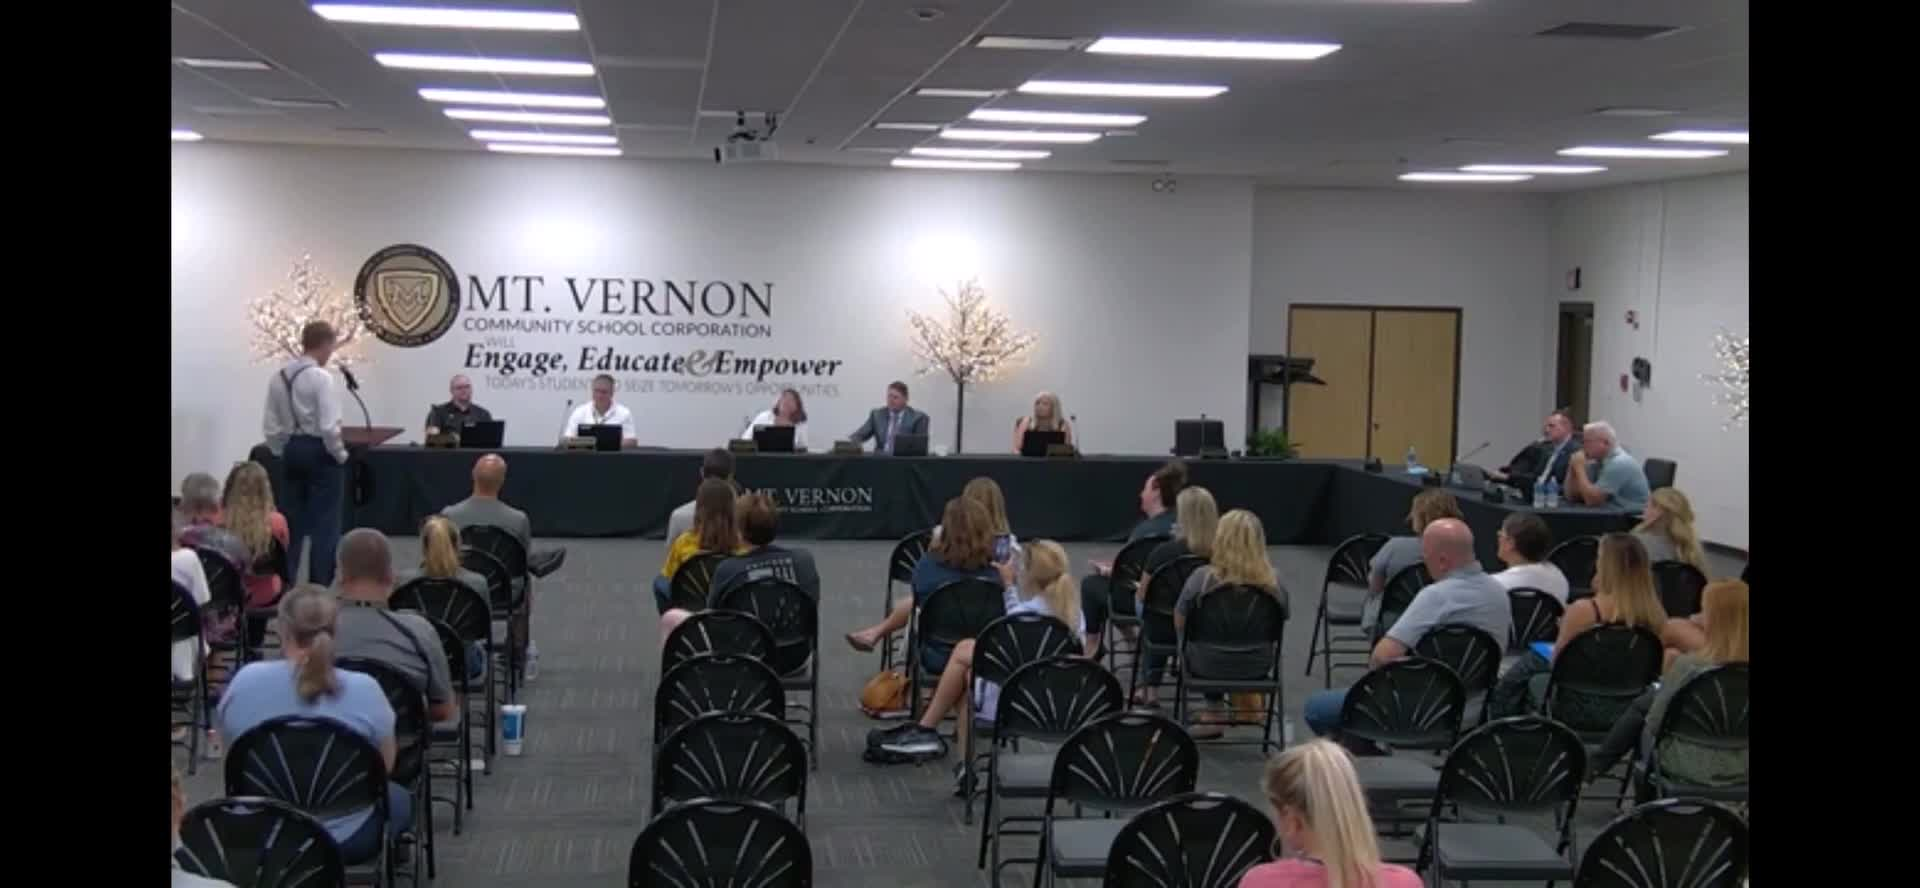 Dr. Dan Stock Blasts CDC and Mt. Vernon School Board Over Useless COVID Restrictions